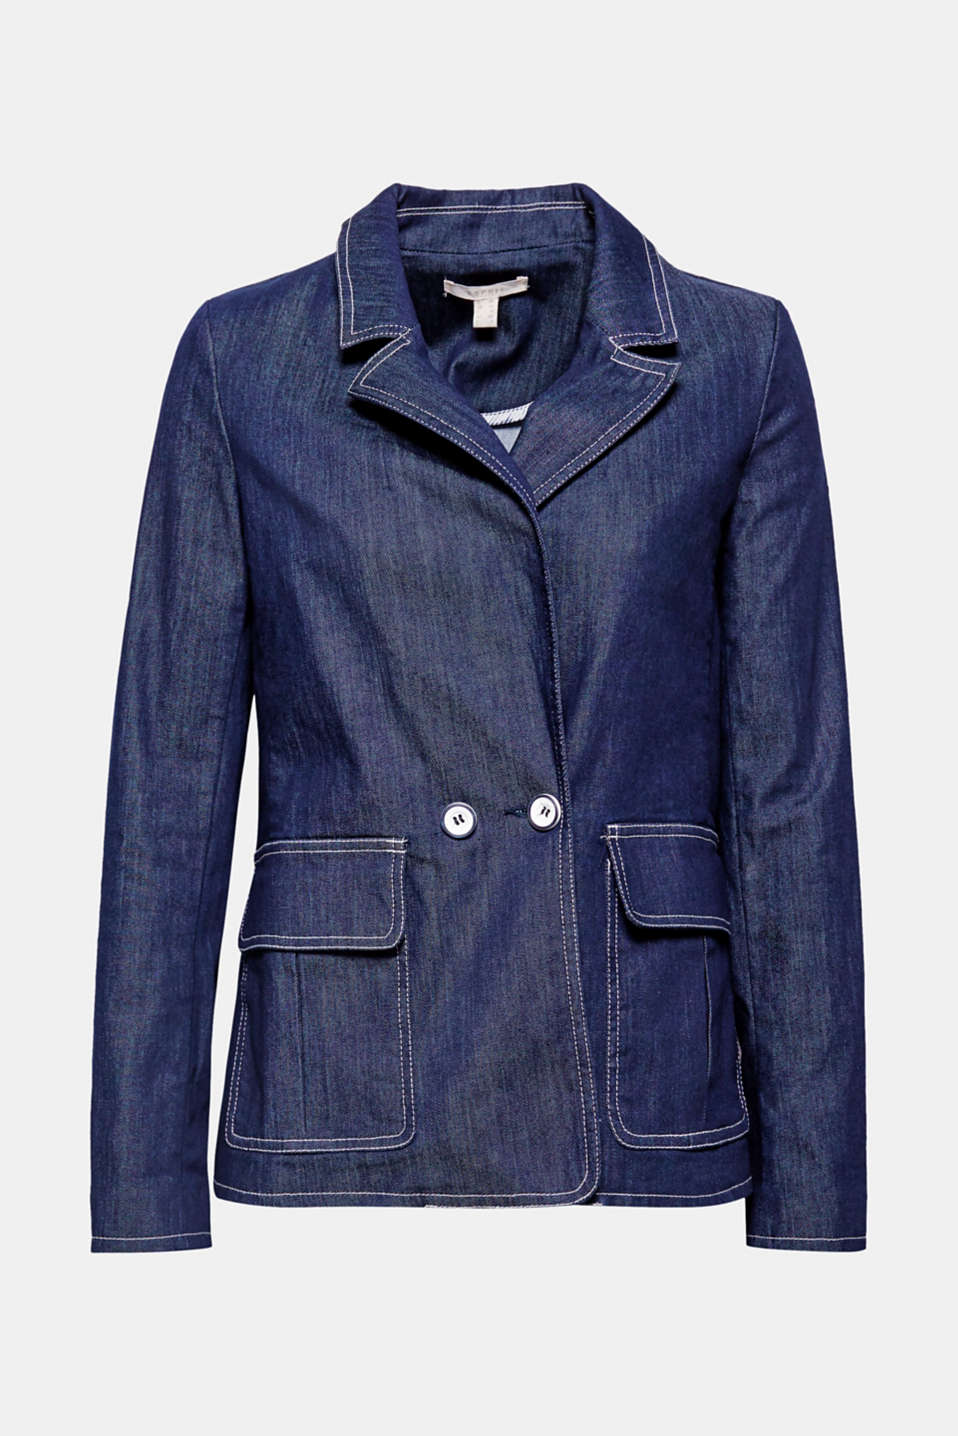 Casual denim style: comfy, stretchy blazer with a lapel and large flap pockets at hip height.